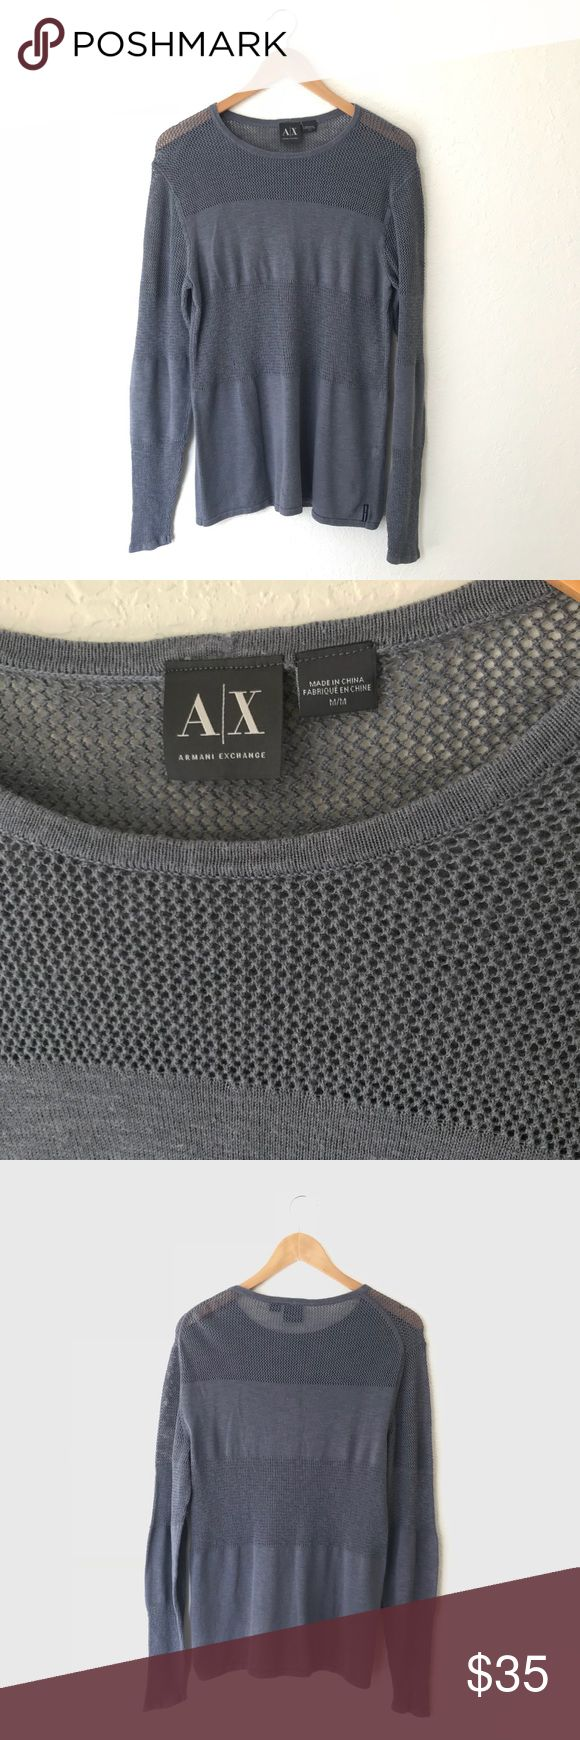 Armani Exchange Gray Mesh Panel Sweater Long sleeve gray mesh panel sweater for Men by Armani Exchange. Excellent preowned condition. A/X Armani Exchange Sweaters